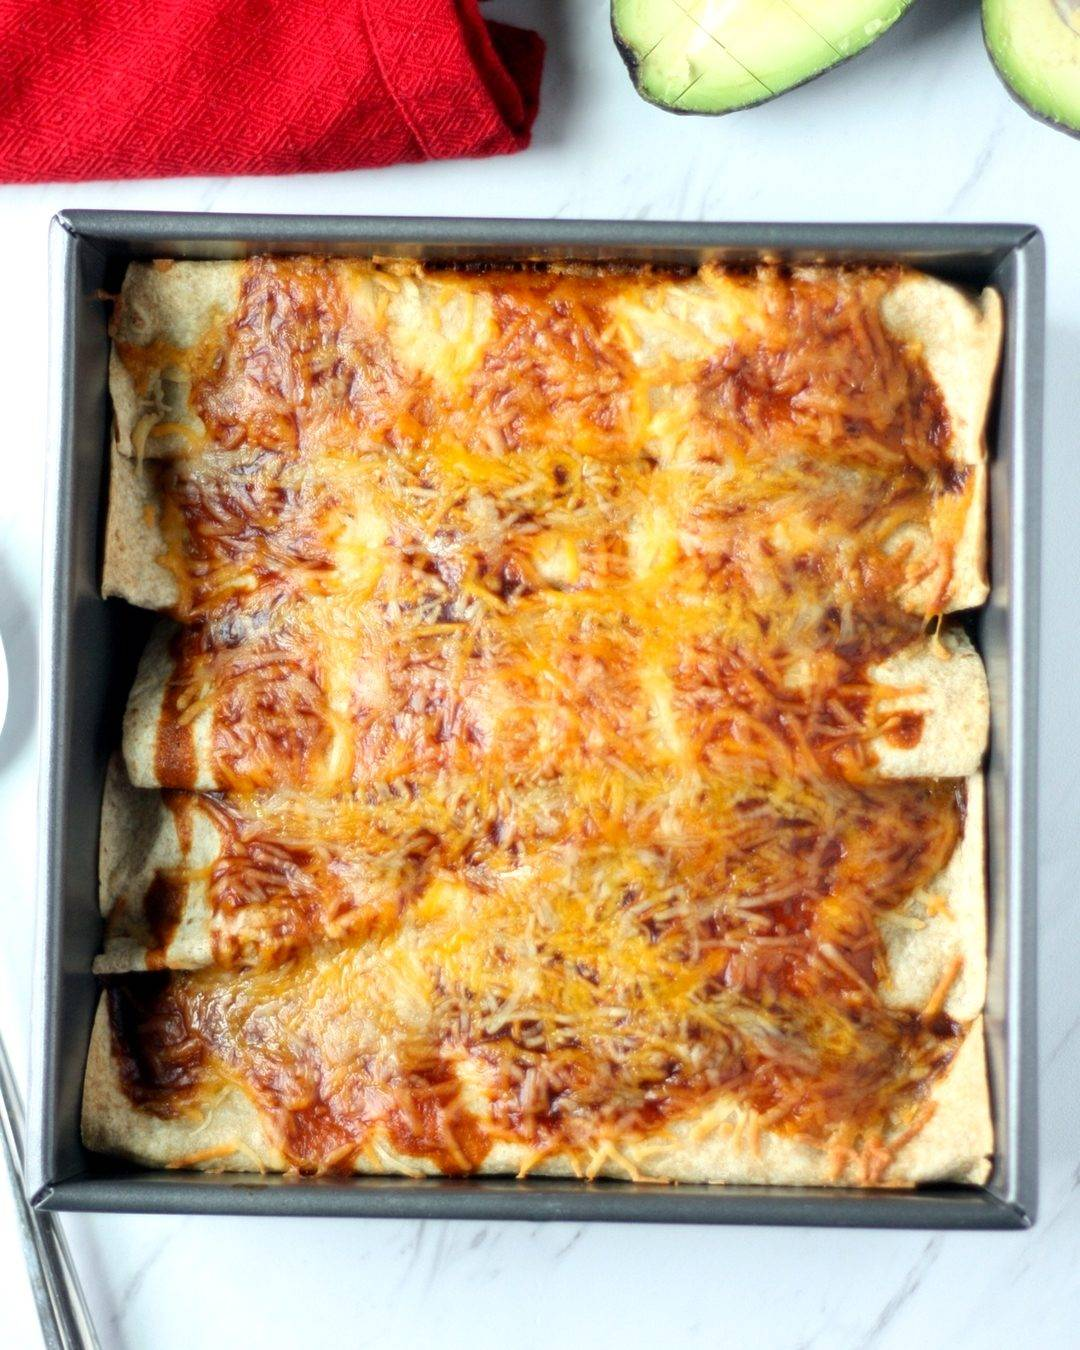 Pan with Enchiladas Made with Leftover Chicken